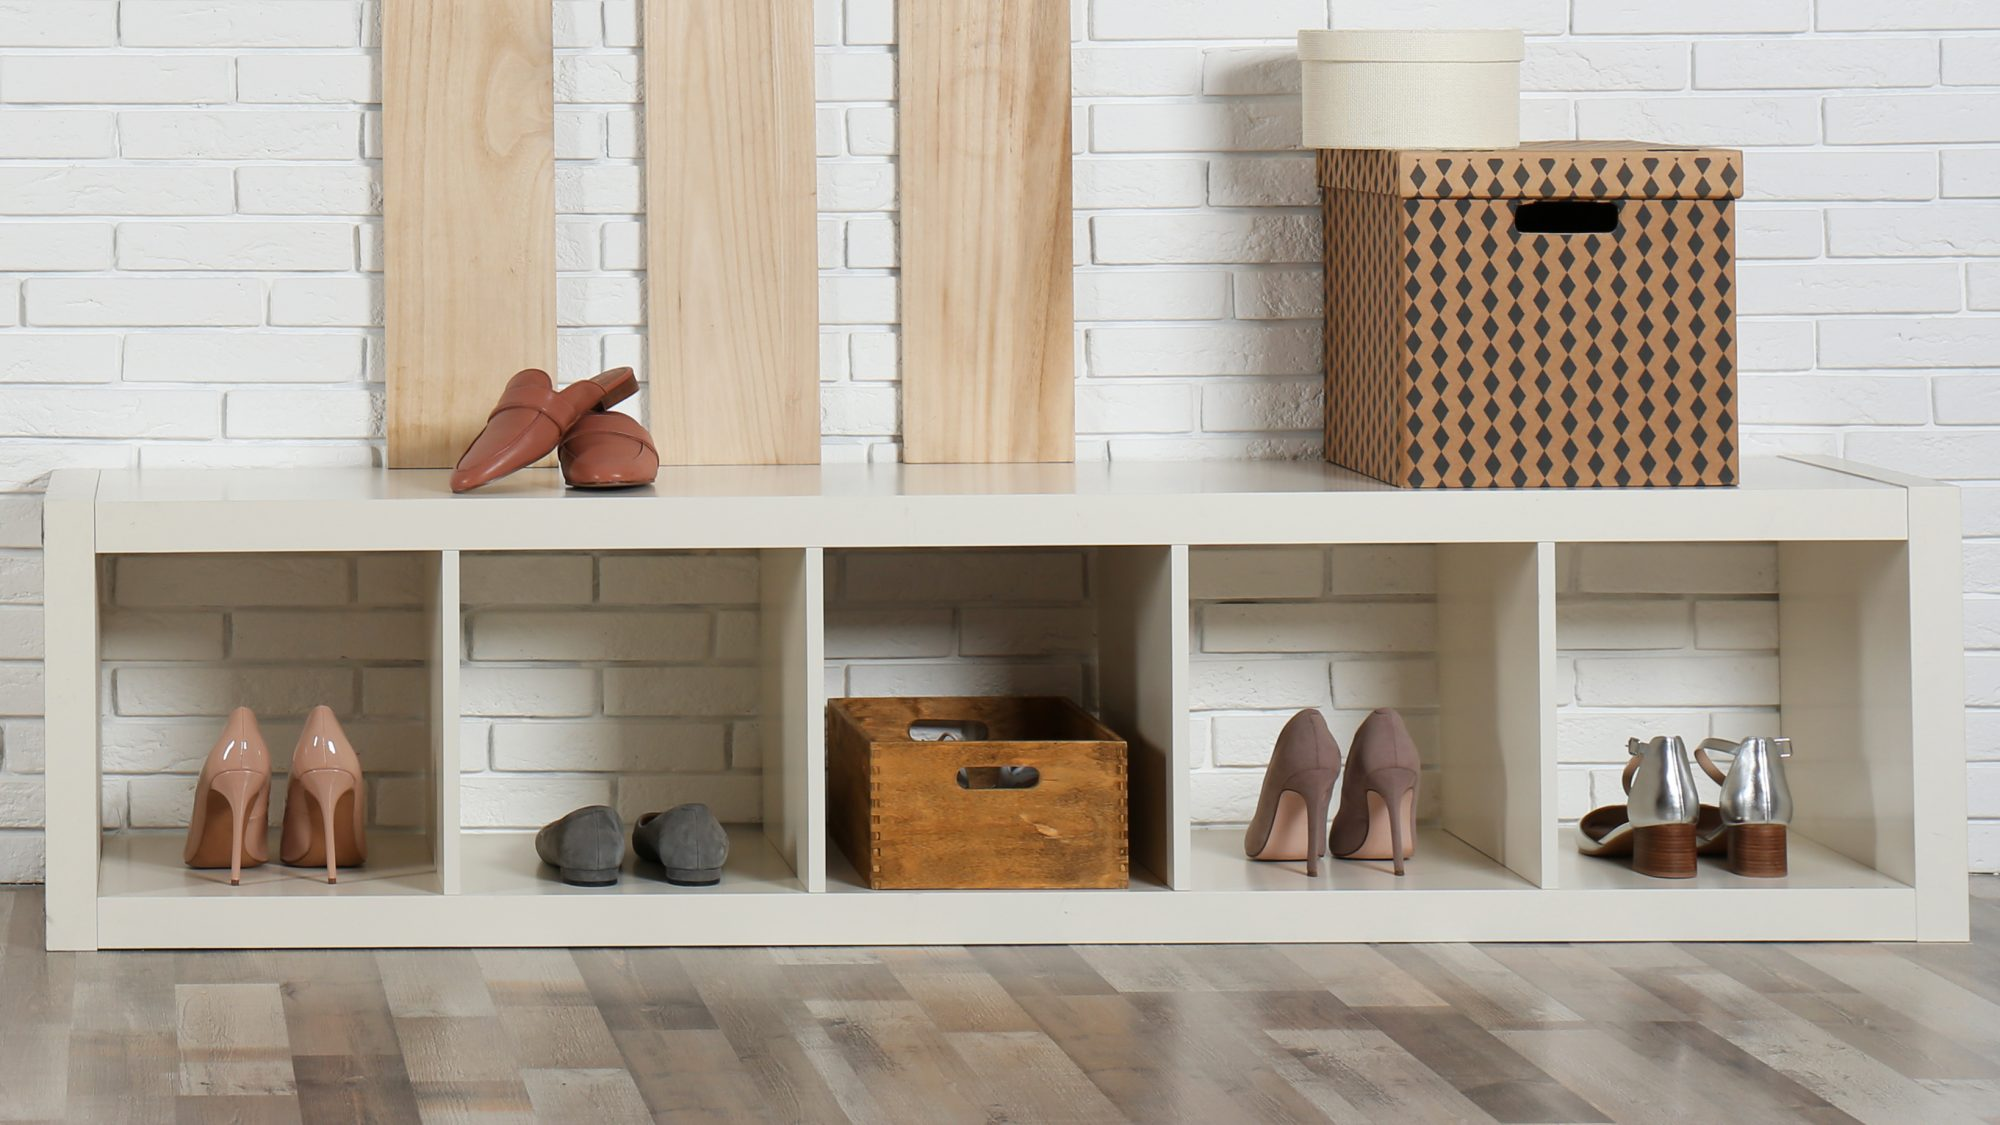 habits for sanitary home, leave shoes in entryway storage rack